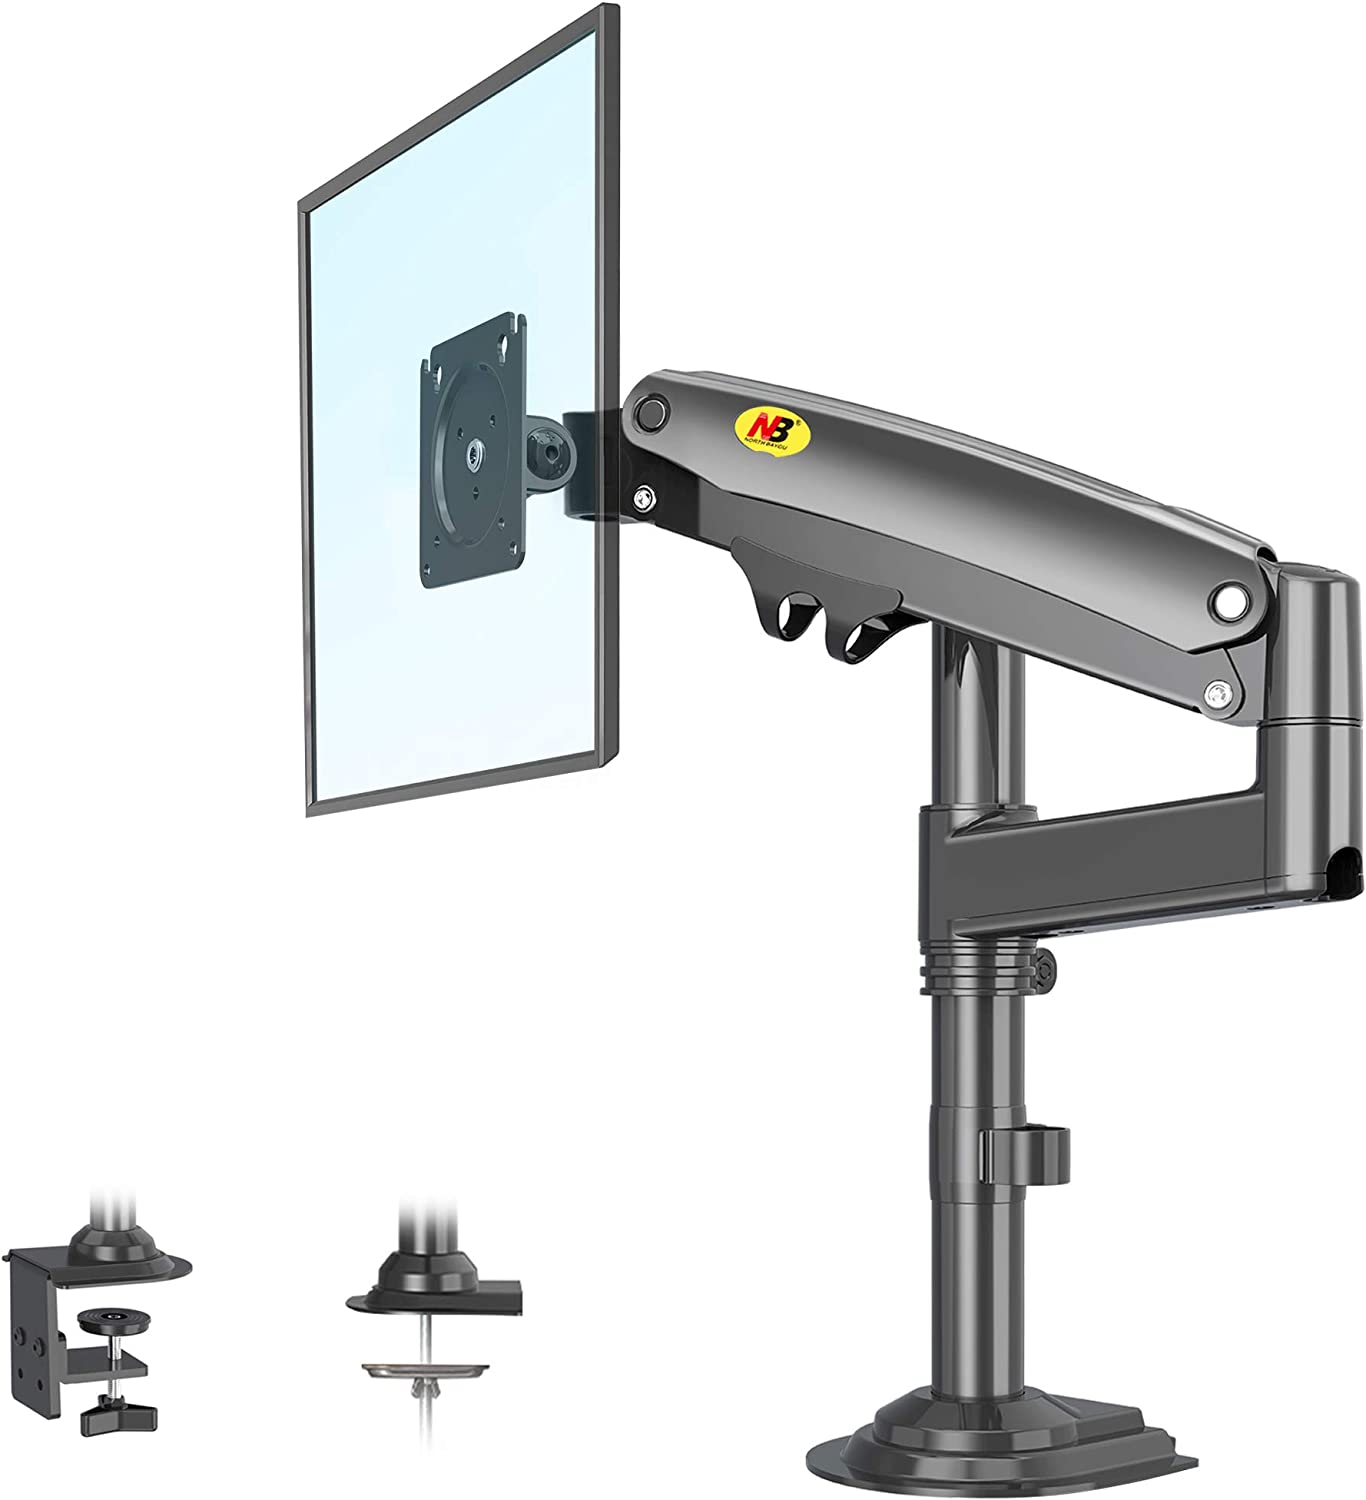 NB North Bayou Monitor Desk Mount Long Arm for 22''-35''Monitors from 6.6 to 26.4lbs Ultra Wide Full Motion Swivel Height Adjustable Monitor Stand H100-B